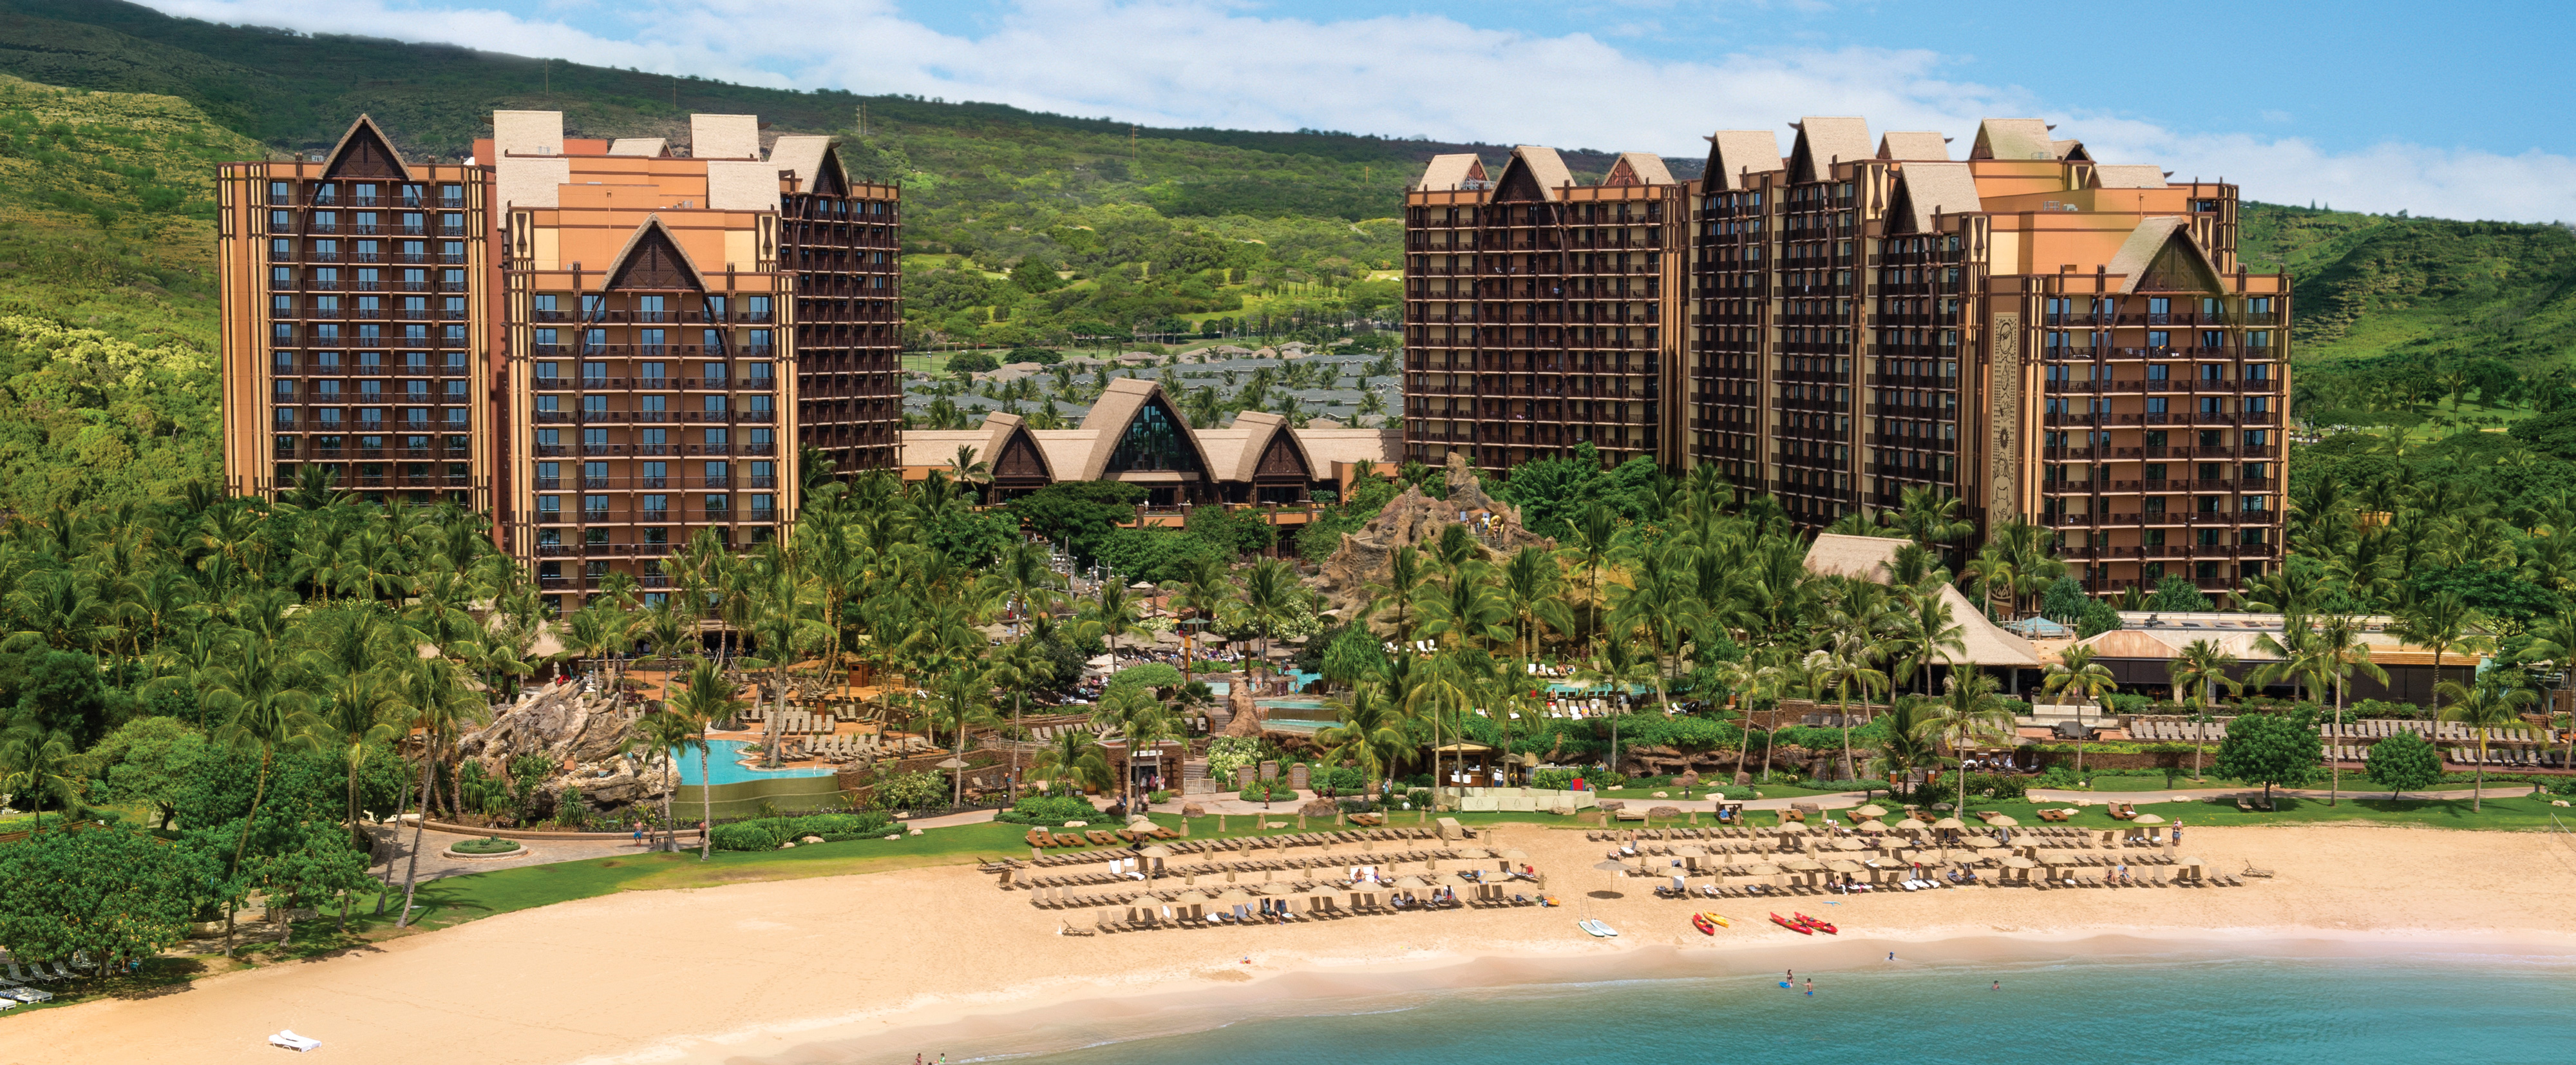 The buildings, pools and beachfront of Aulani Resort set against the Oahu hills